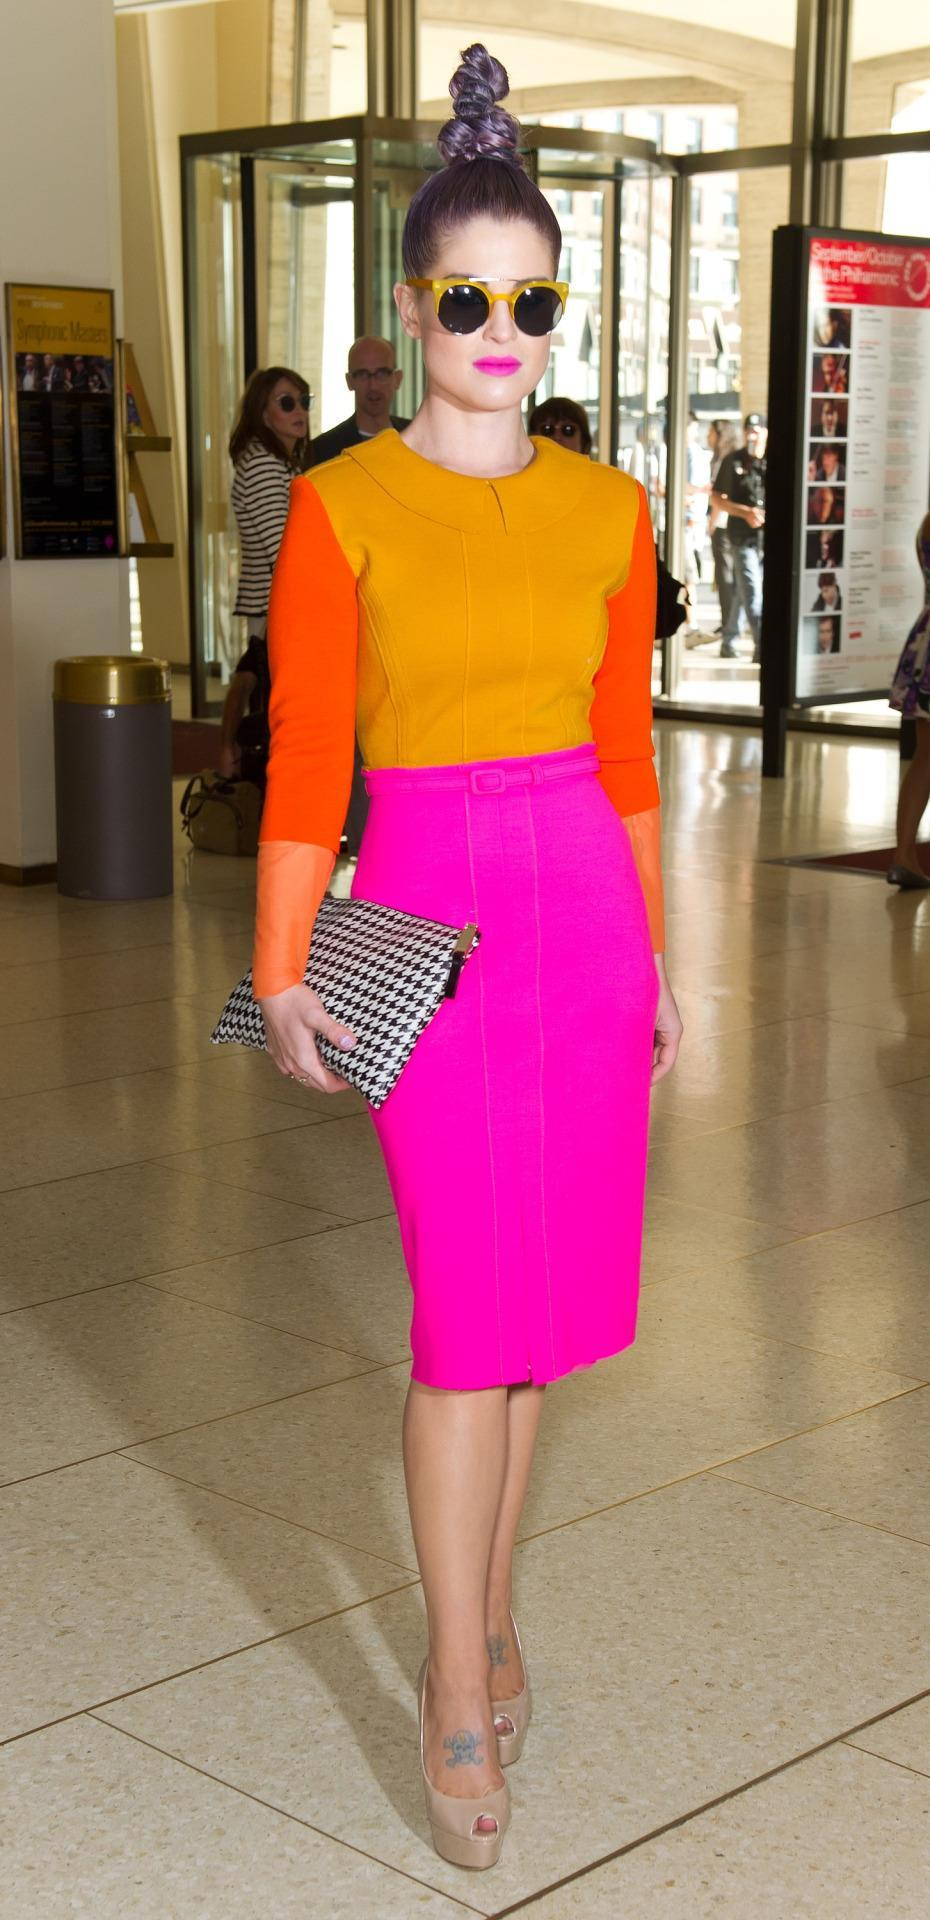 """Violet haired Kelly Osbourne definitely isn't one to shy away from taking risks with color. """"Getting ready to go see the @cmbenz presentation! The dress Im wearing is the most amazingly neon orange and pink dress ever!"""" Kelly tweeted when she wore this light orange, dark orange and hot pink outfit."""